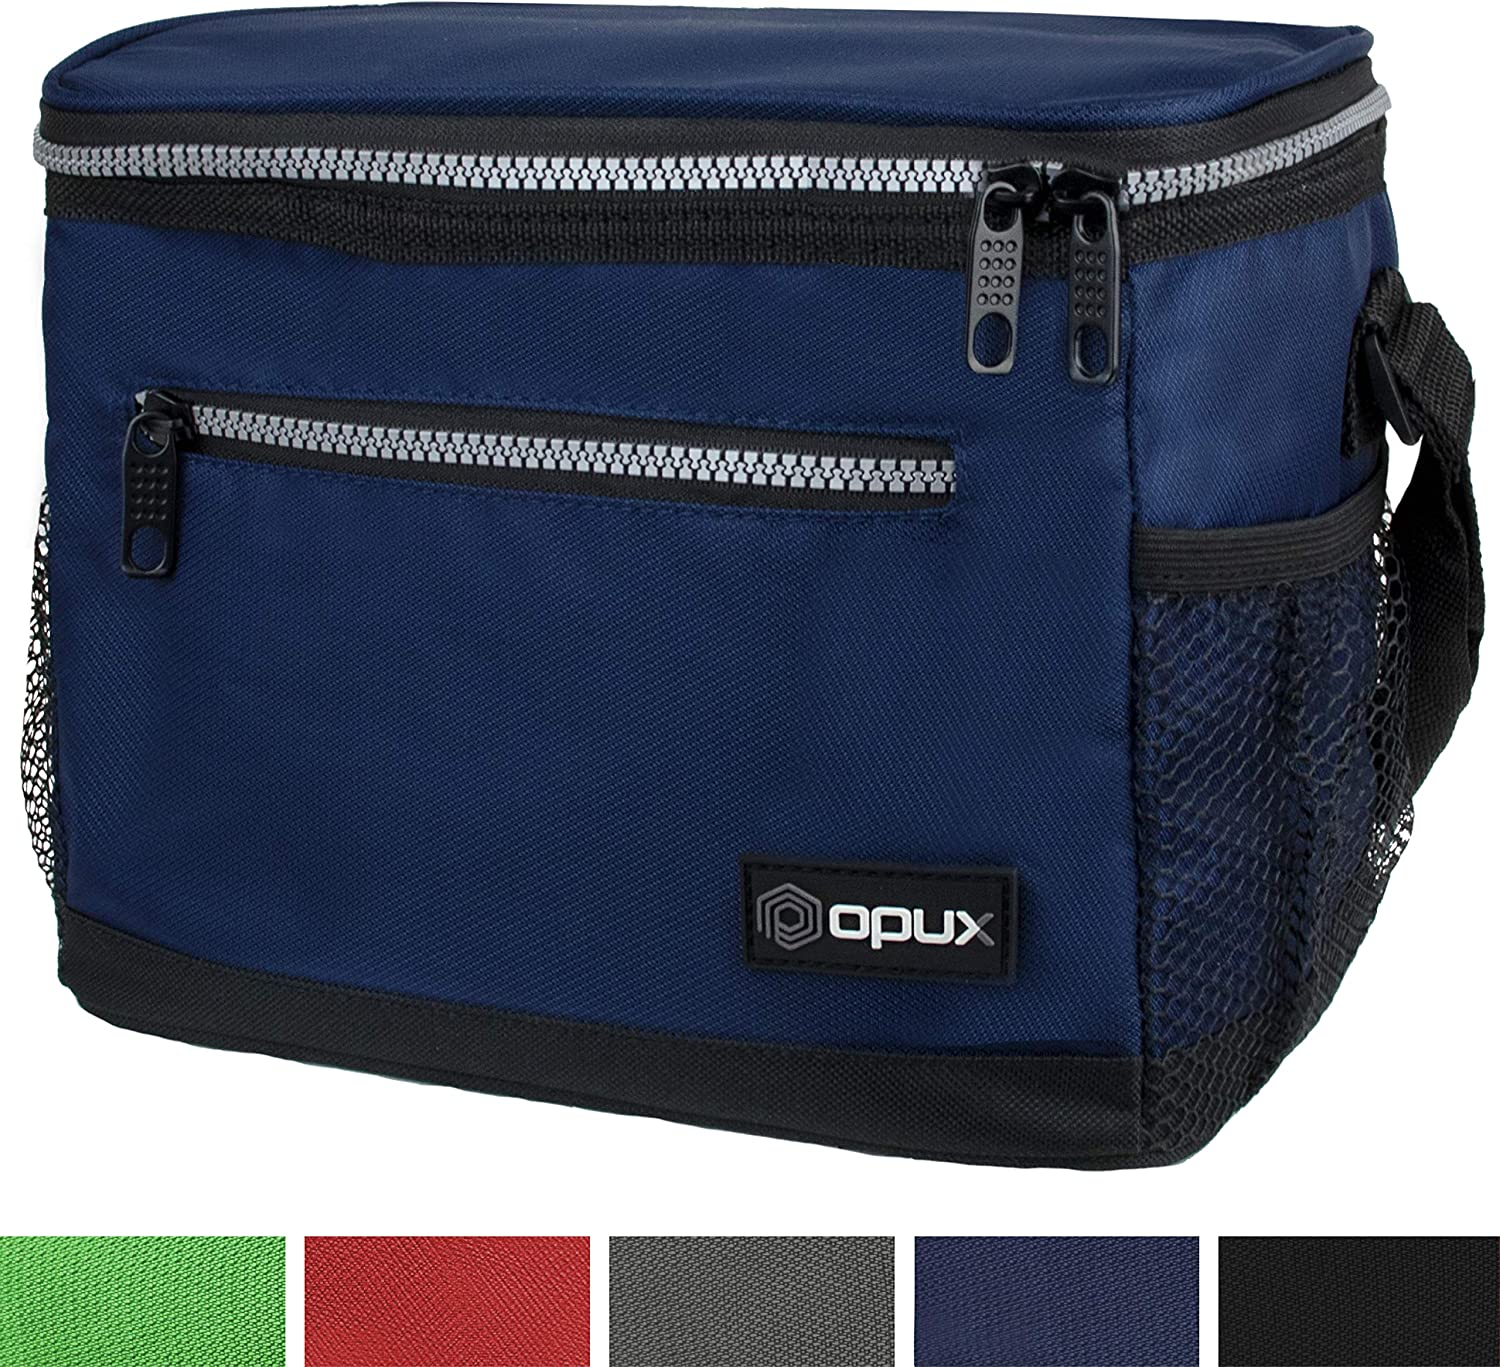 OPUX Premium Lunch Box, Insulated Lunch Bag for Men Women Adult | Durable School Lunch Pail for Boys, Girls, Kids | Soft Leakproof Medium Lunch Cooler Tote for Work Office | Fits 8 Cans (Navy)